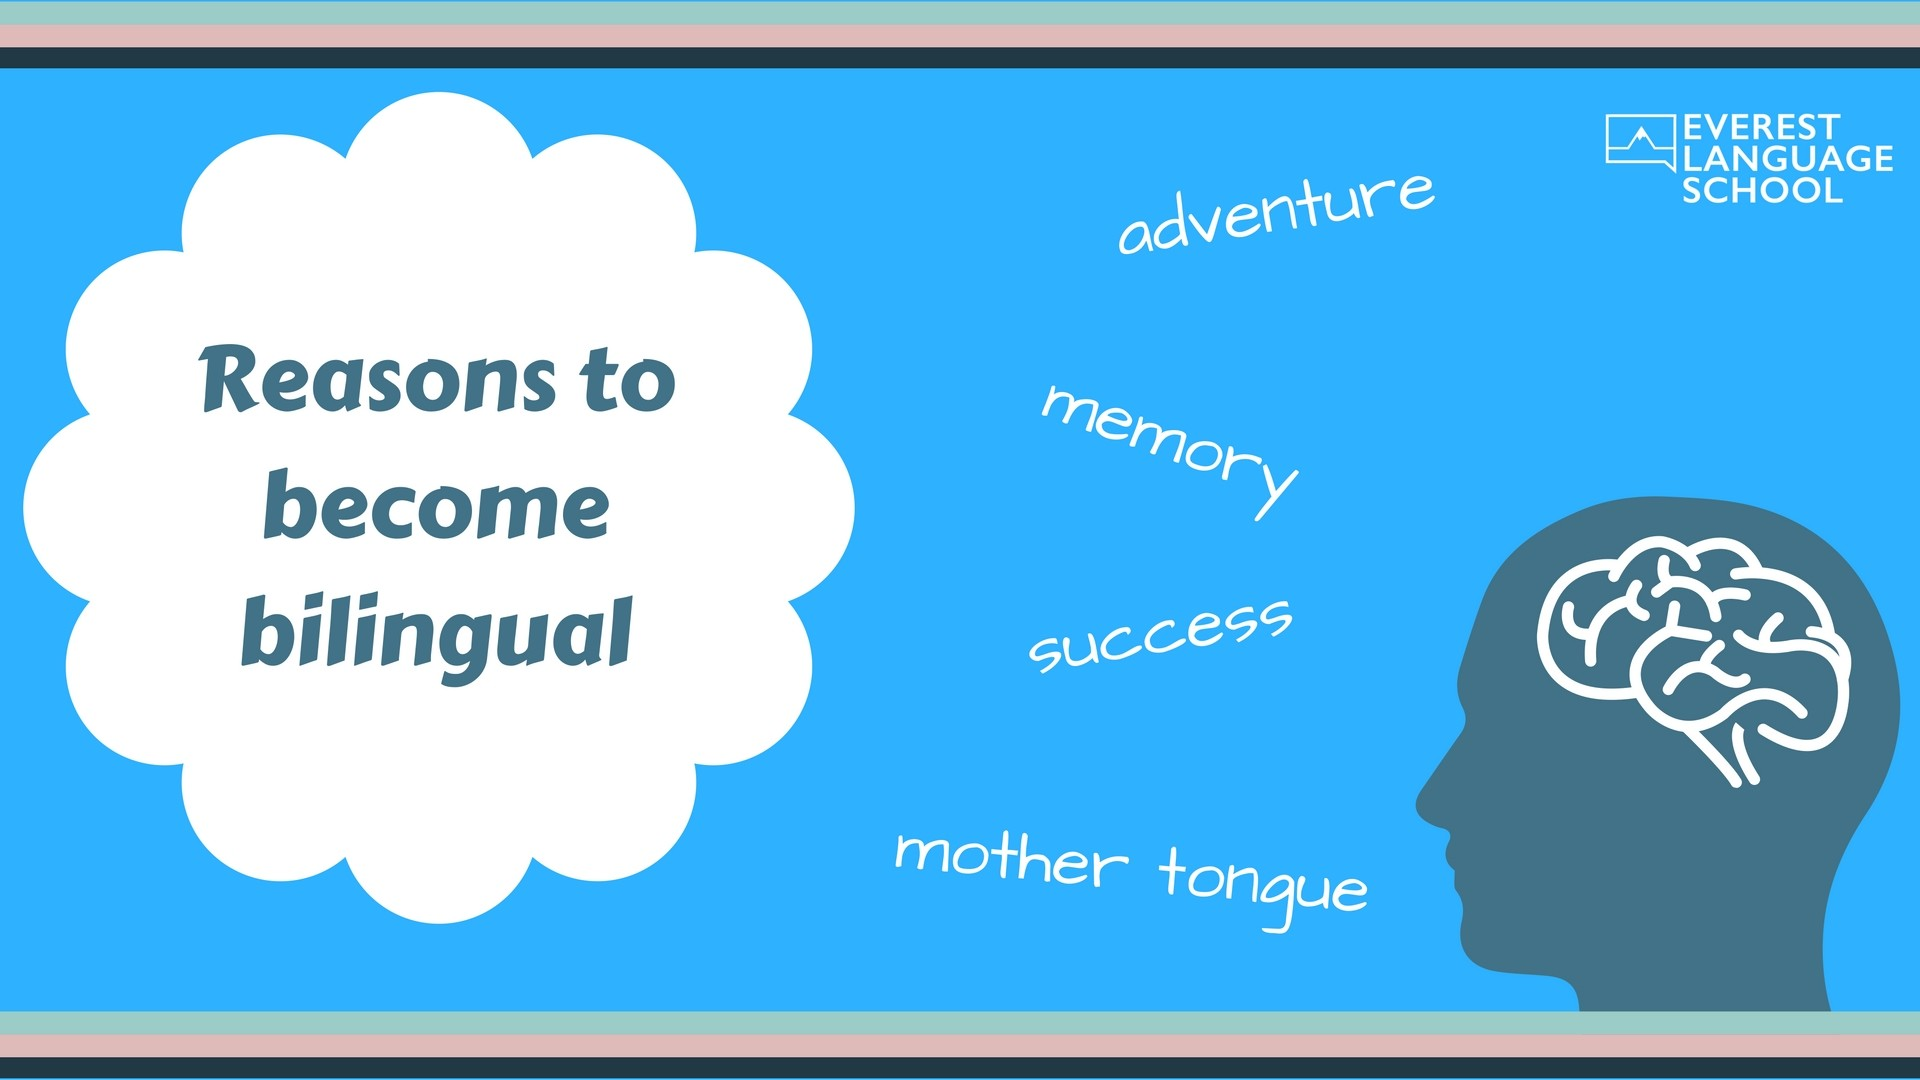 Reasons to become bilingual